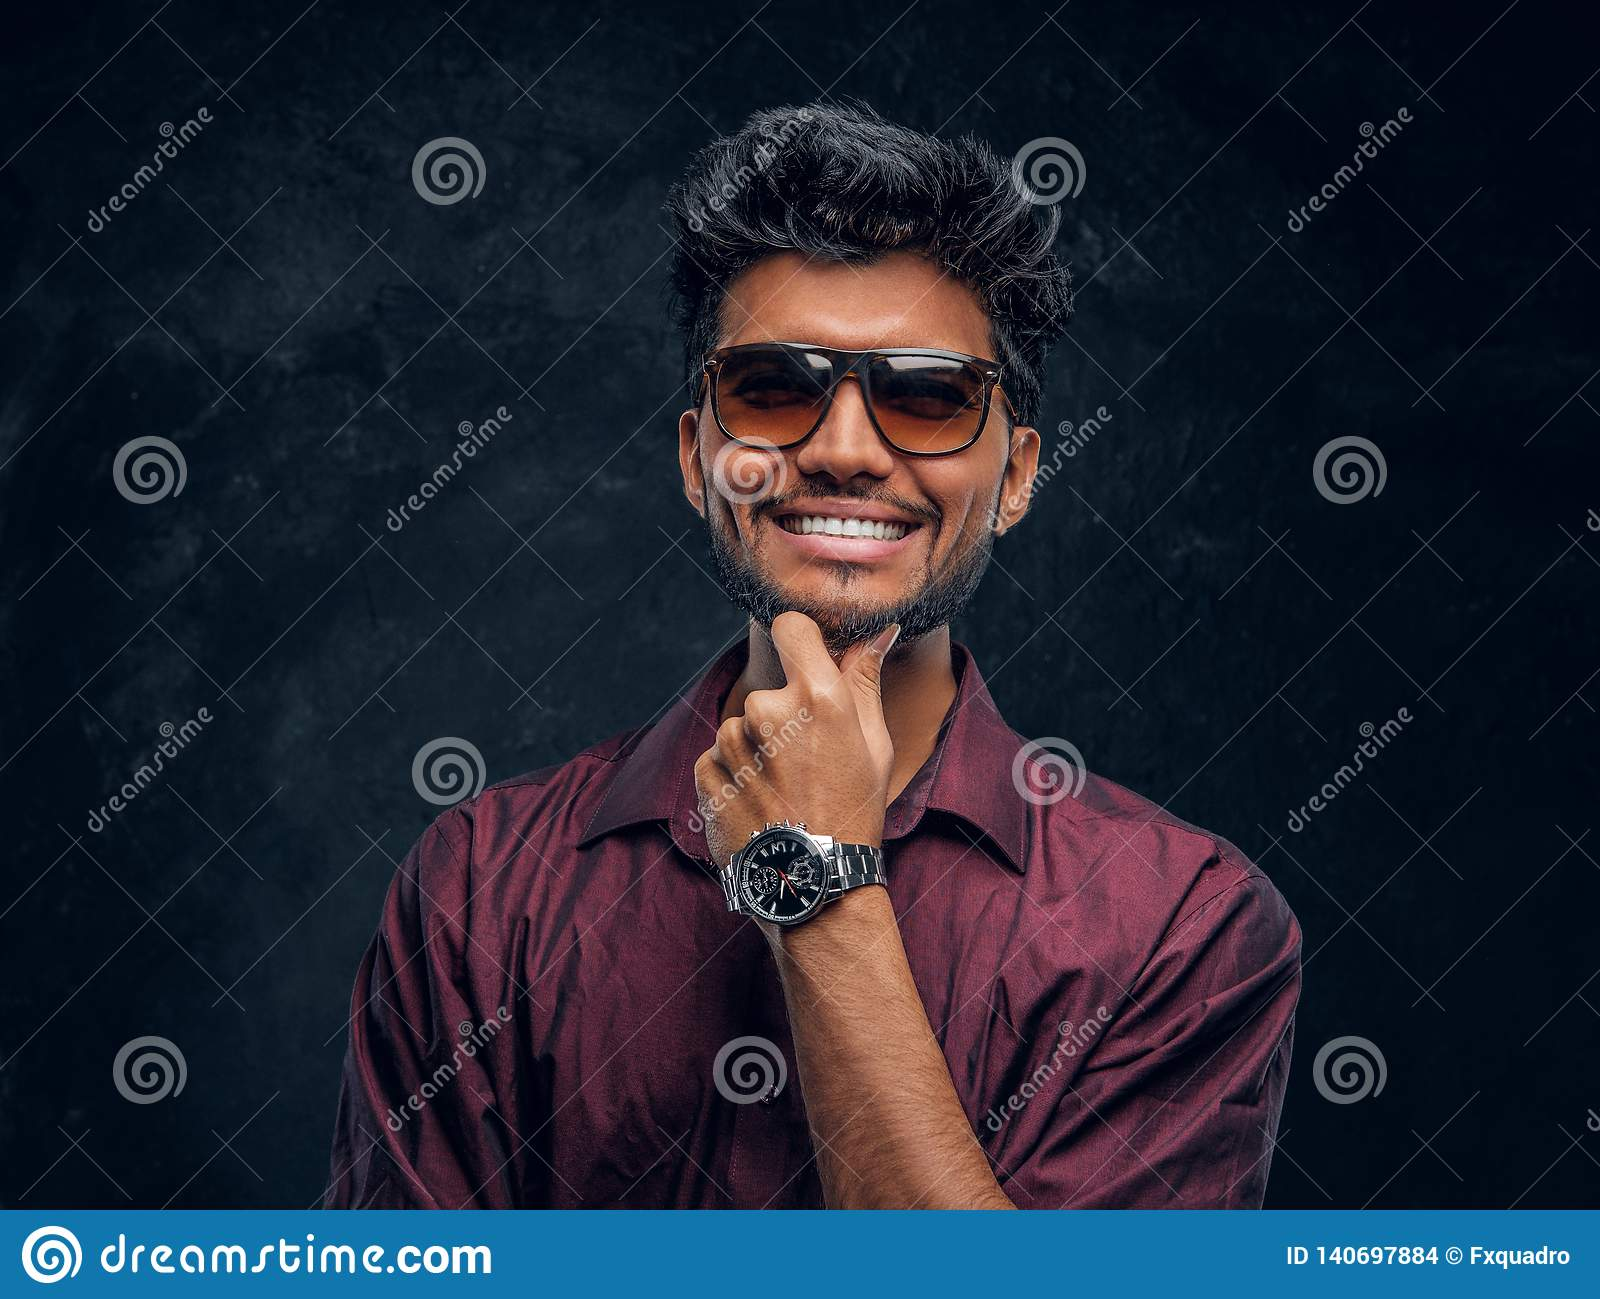 Vogue, fashion, style. Cheerful young Indian guy wearing a stylish shirt and sunglasses posing with hand on chin.